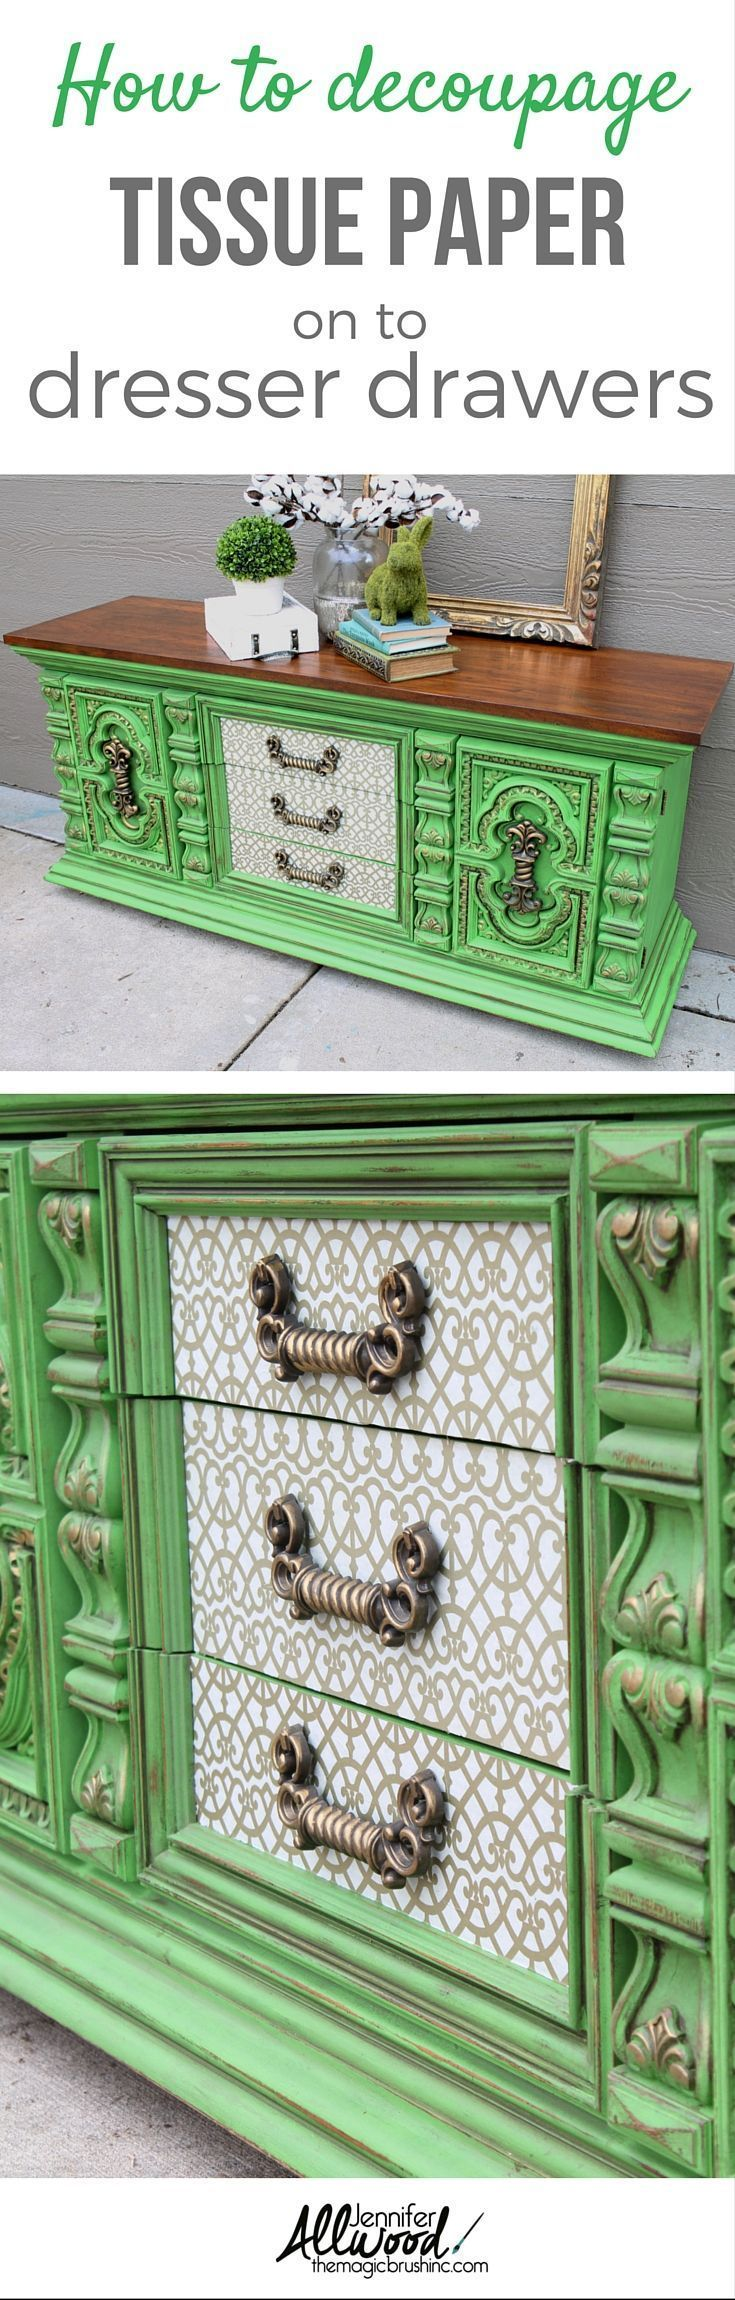 Ideas : Tutorial on how to decoupage tissue paper on to dresser drawers. Check out this furniture makeover using a  bold green apple color and decoupaged tissued drawers. More Painting tips, color advice and DIY projects at theMagicBrushinc.com #paintedfurniture #furniture #dresser #diy #howto #diyhomedecor #painting #decoupage